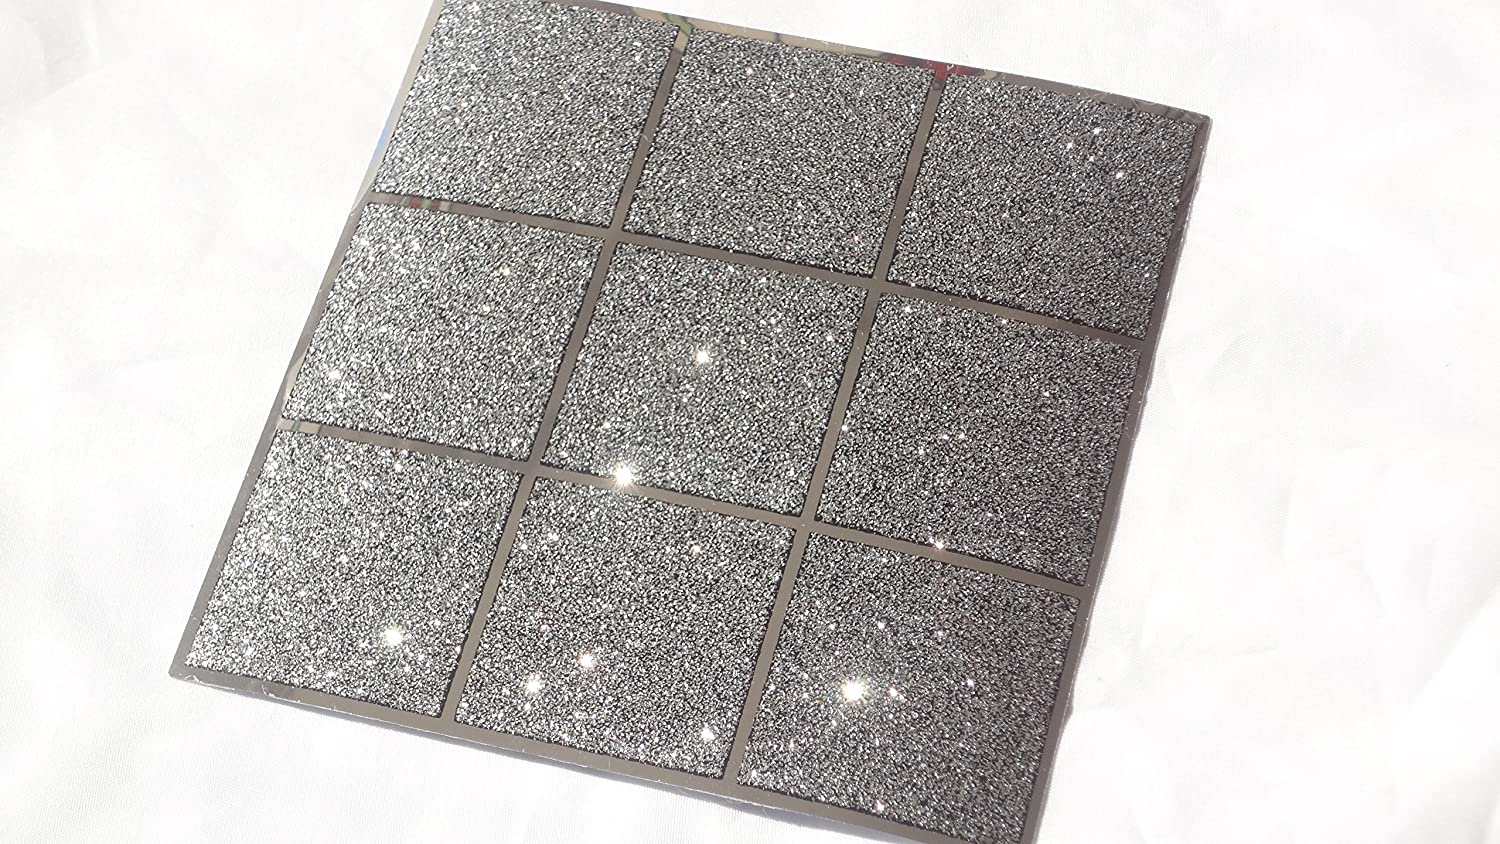 Pack Of 10 Black And Silver Glitter Mosaic Tile Transfers Stickers Bathroom Kitchen Stick On Wall Peel Size 6X6 Amazoncouk Home